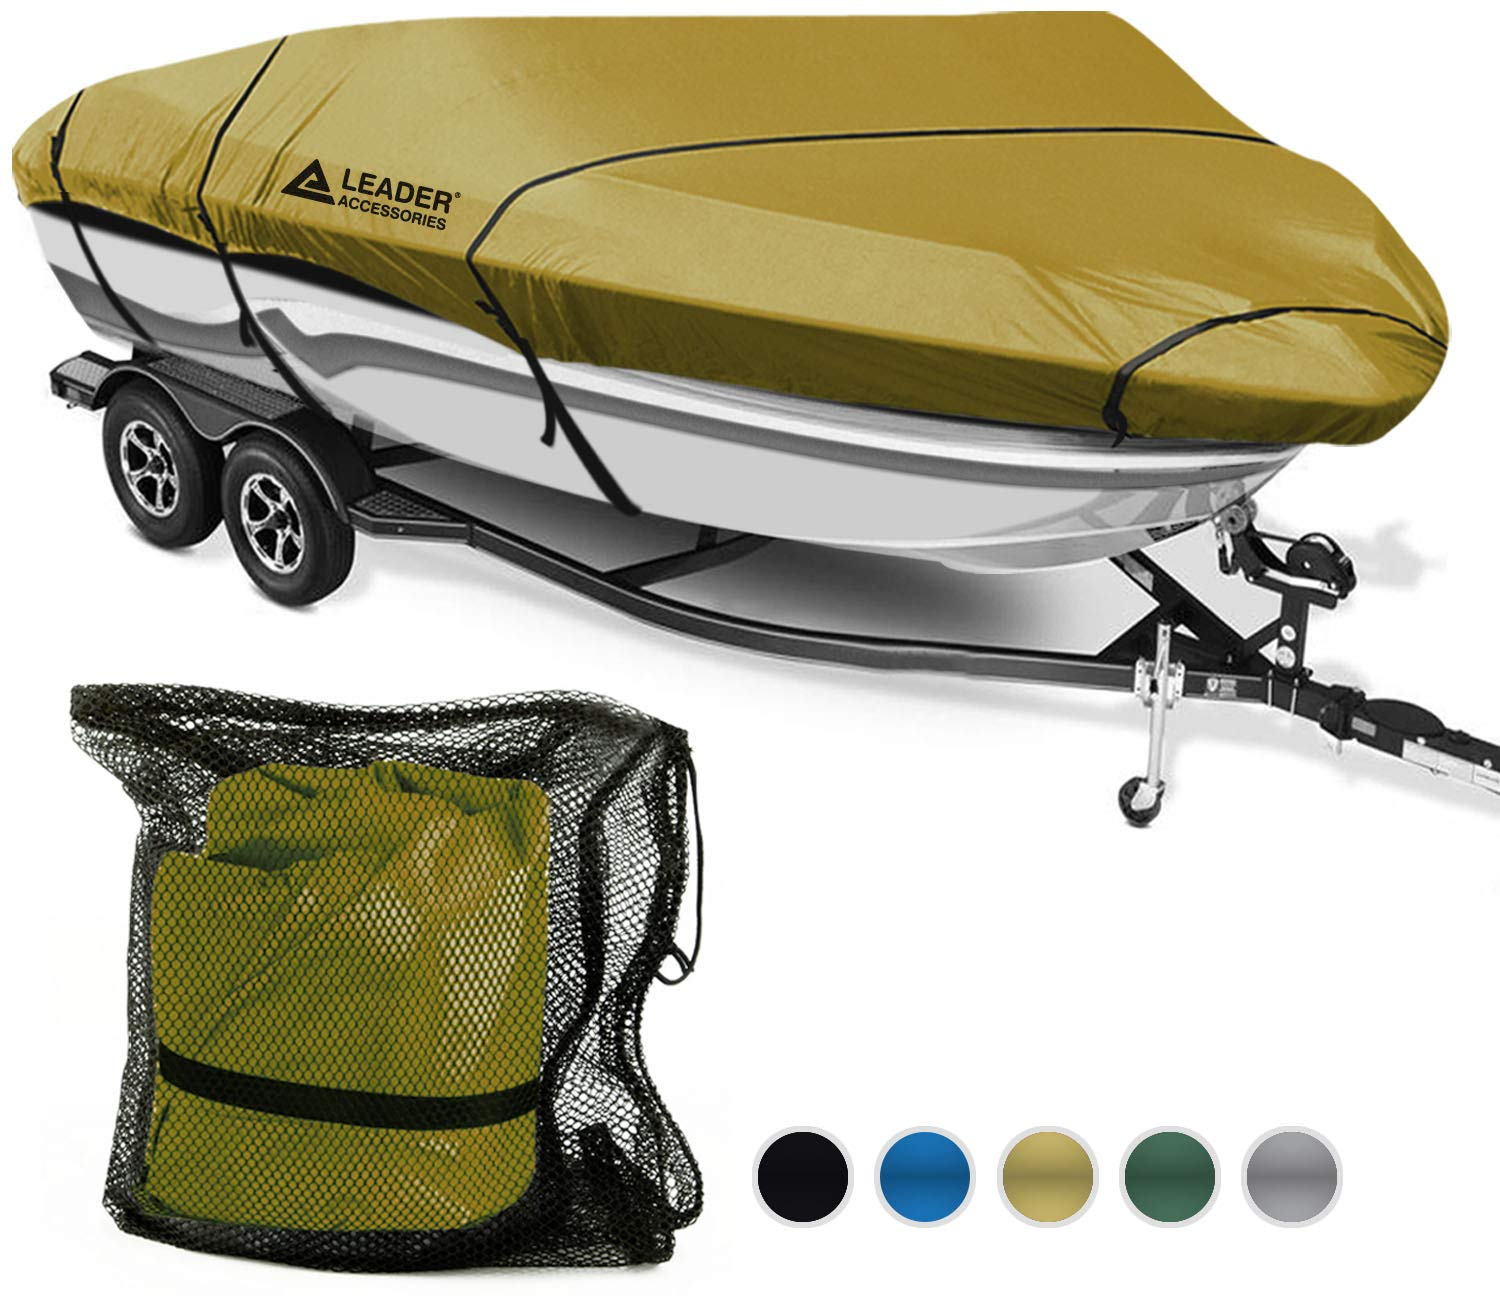 Leader Accessories 600D Polyester 5 Colors Waterproof Trailerable Runabout Boat Cover Fit V-Hull Tri-Hull Fishing Ski Pro-Style Bass Boats, Full Size (Tan, Model D: 17'-19'L Beam Width up to 96'') by Leader Accessories